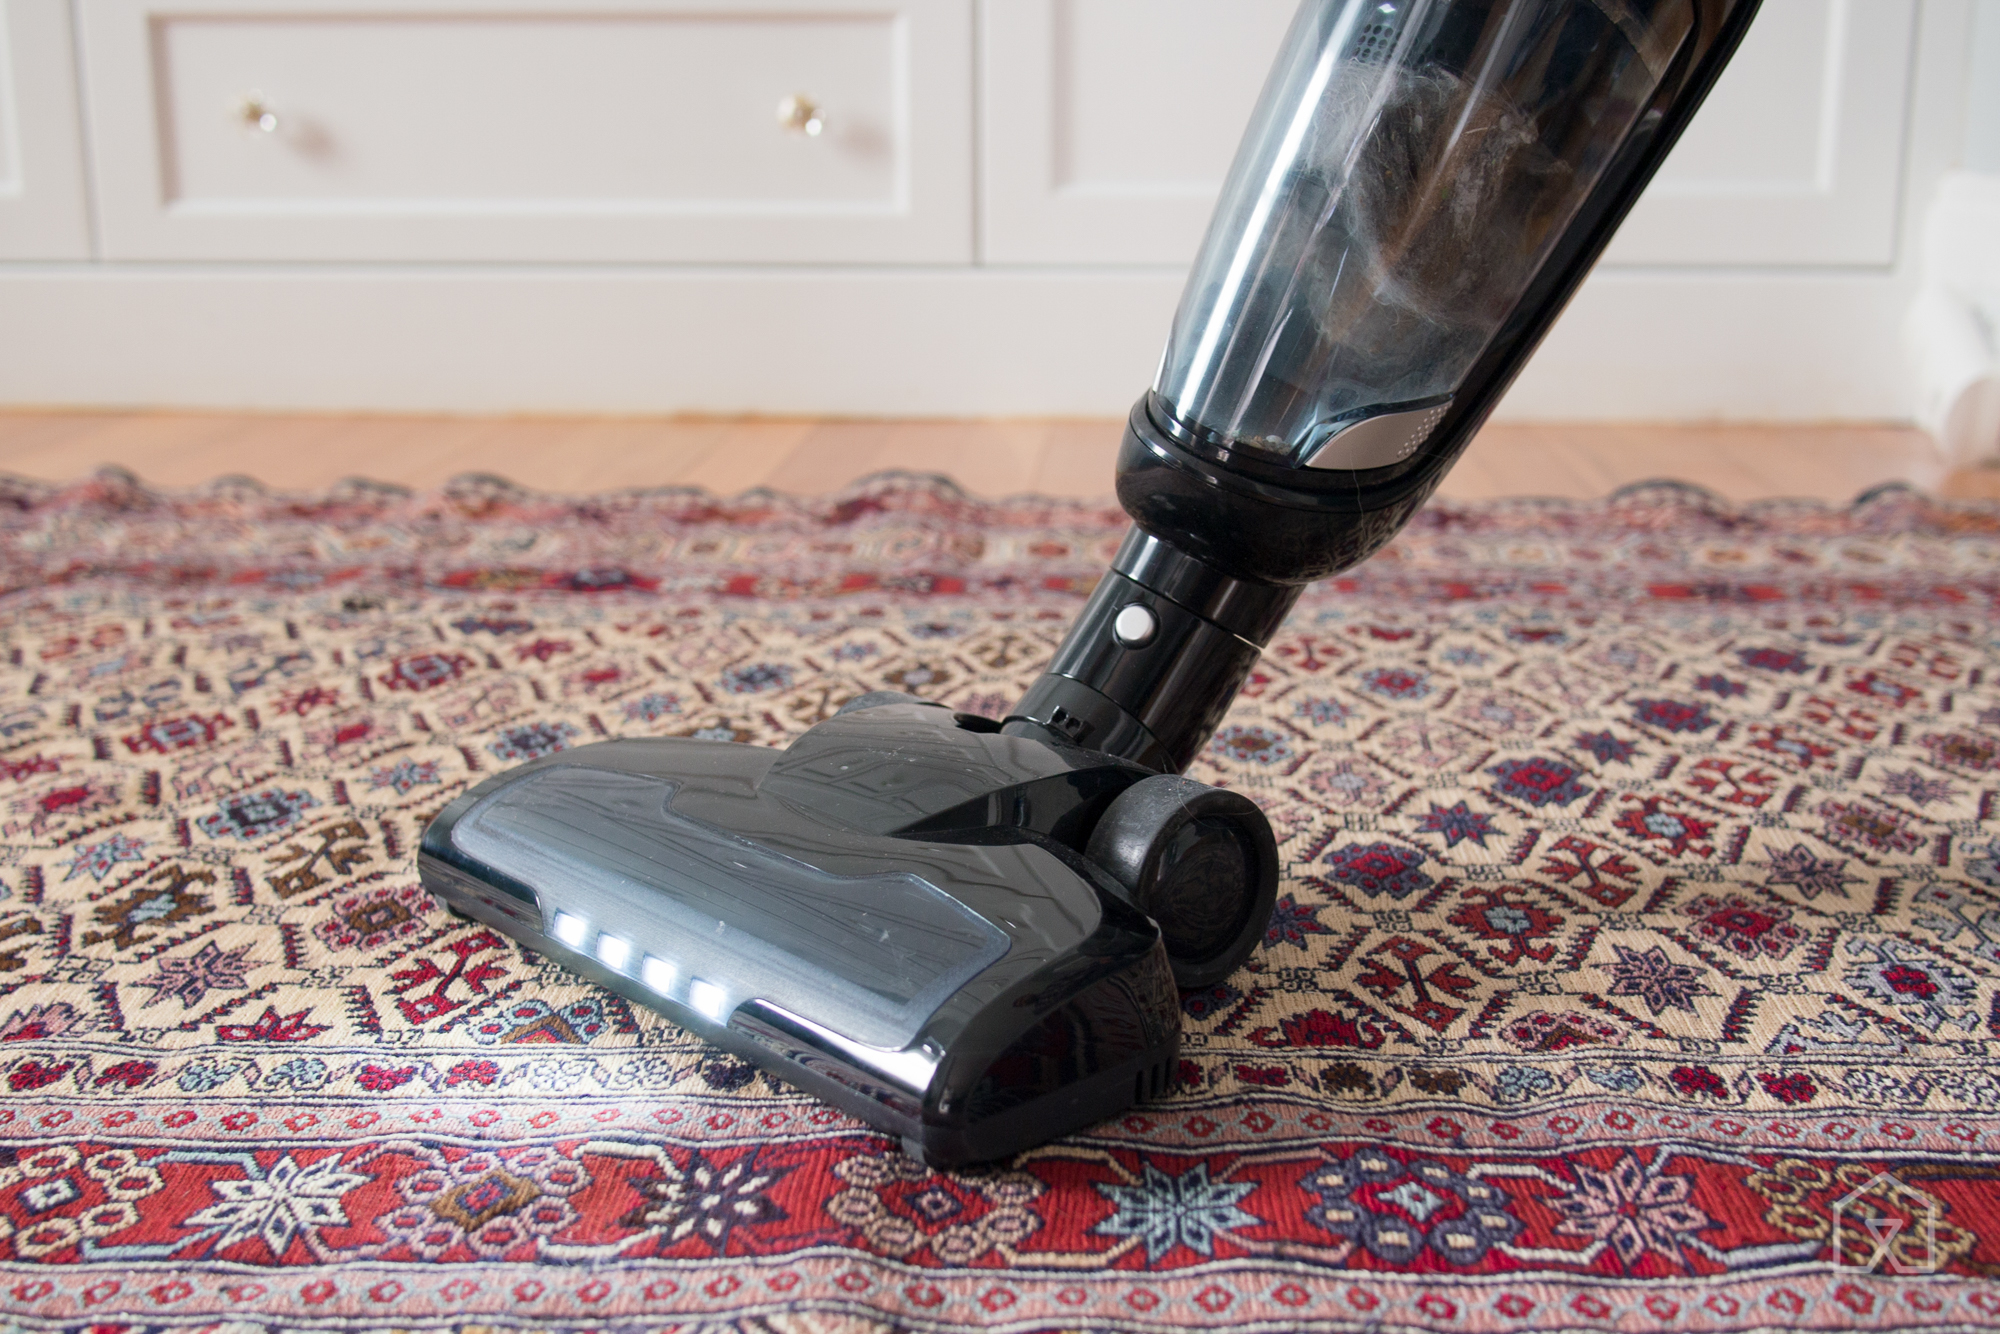 The Best Cordless Stick Vacuum Engadget